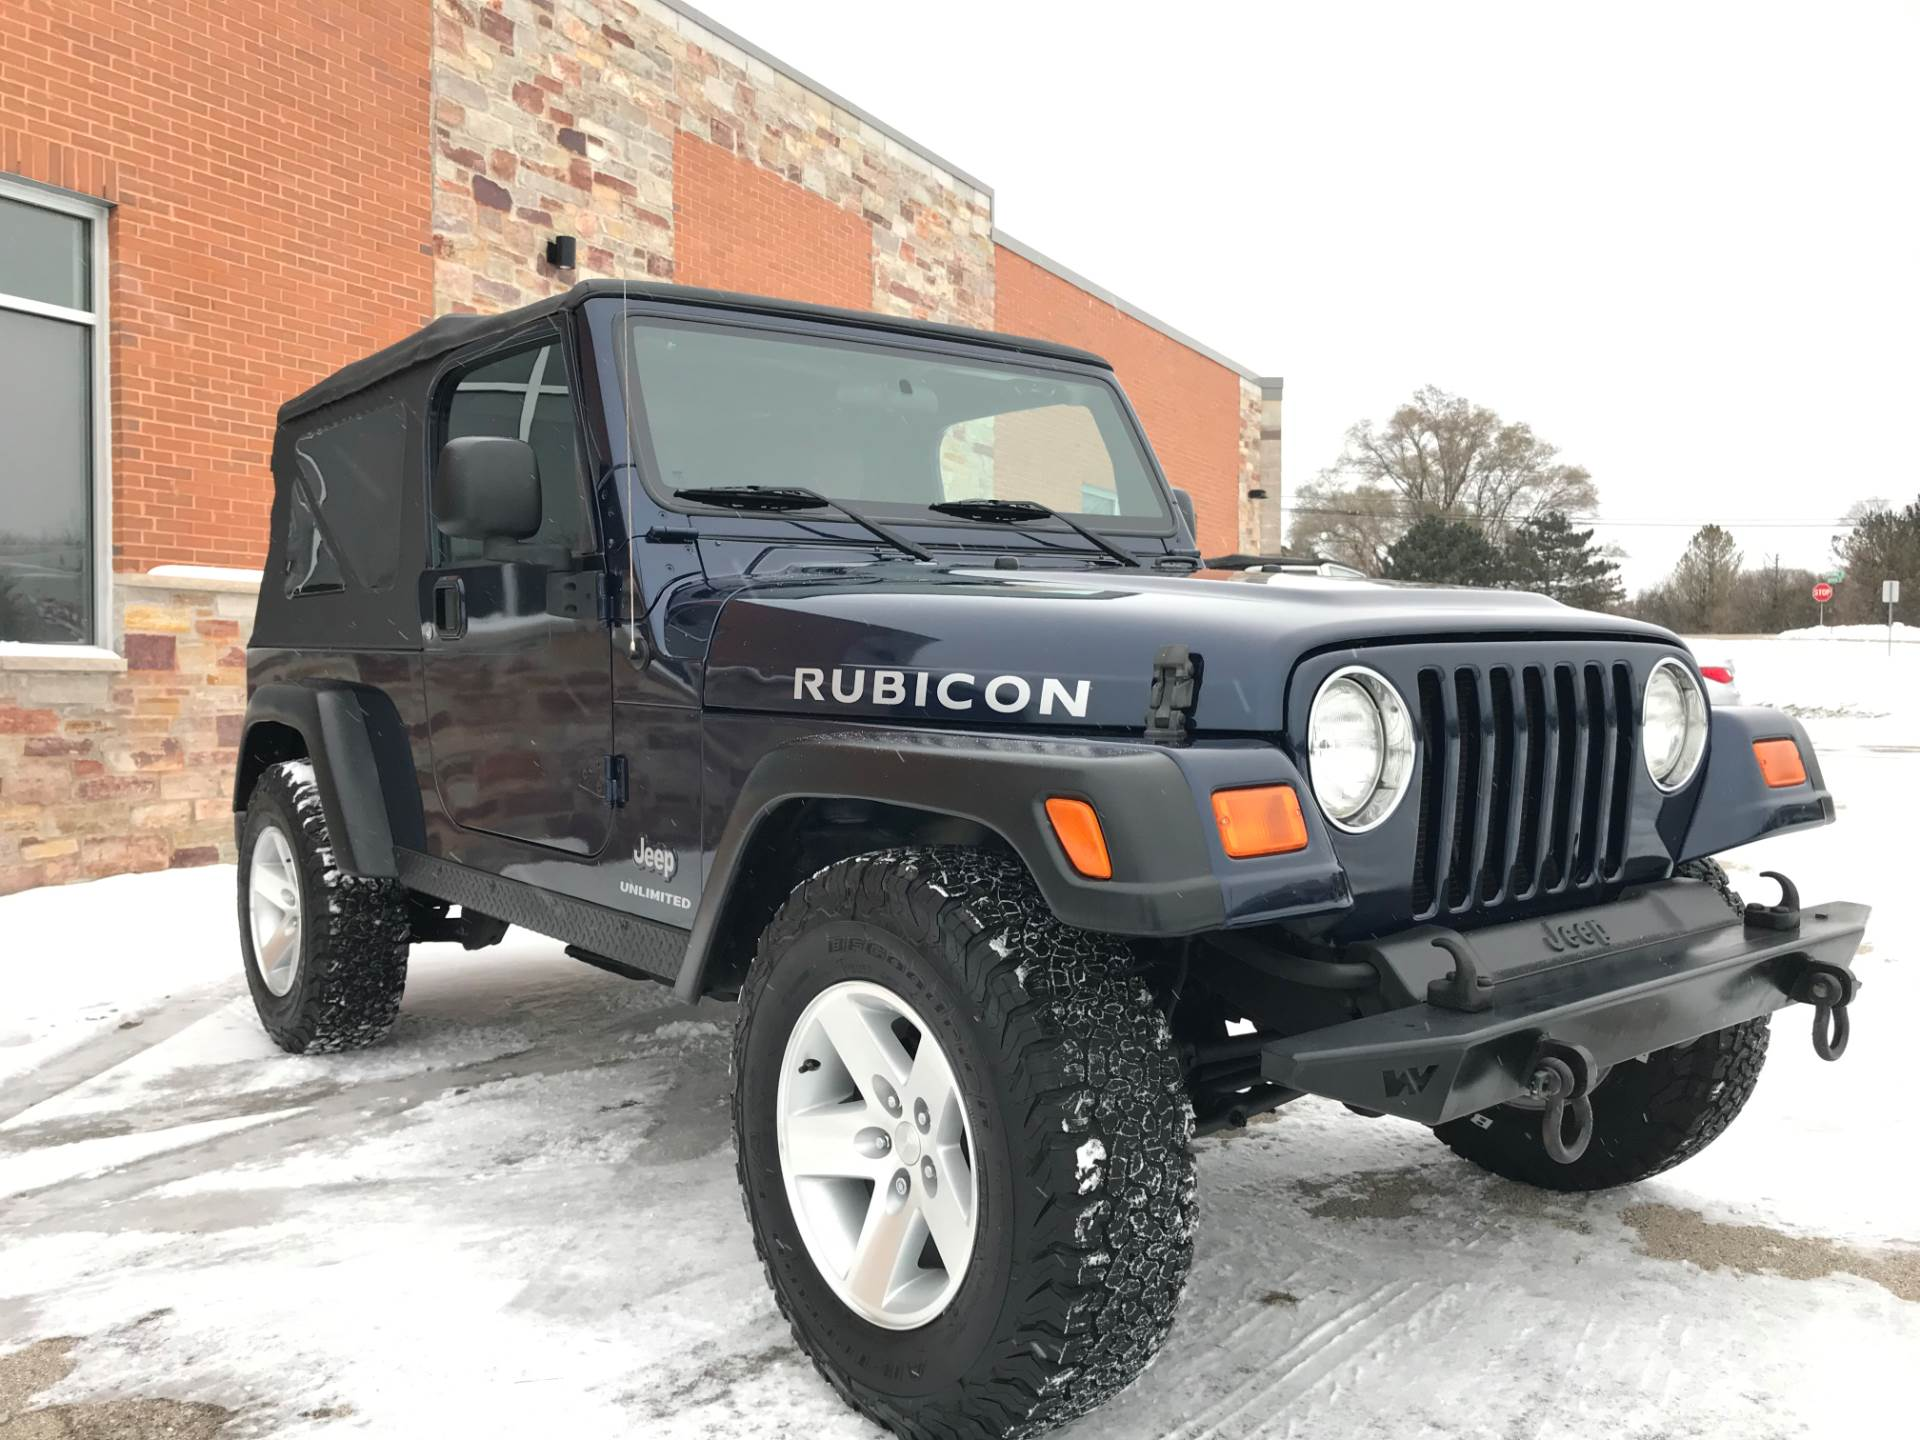 2006 Jeep Wrangler Unlimited Rubicon 2dr SUV 4WD in Big Bend, Wisconsin - Photo 1